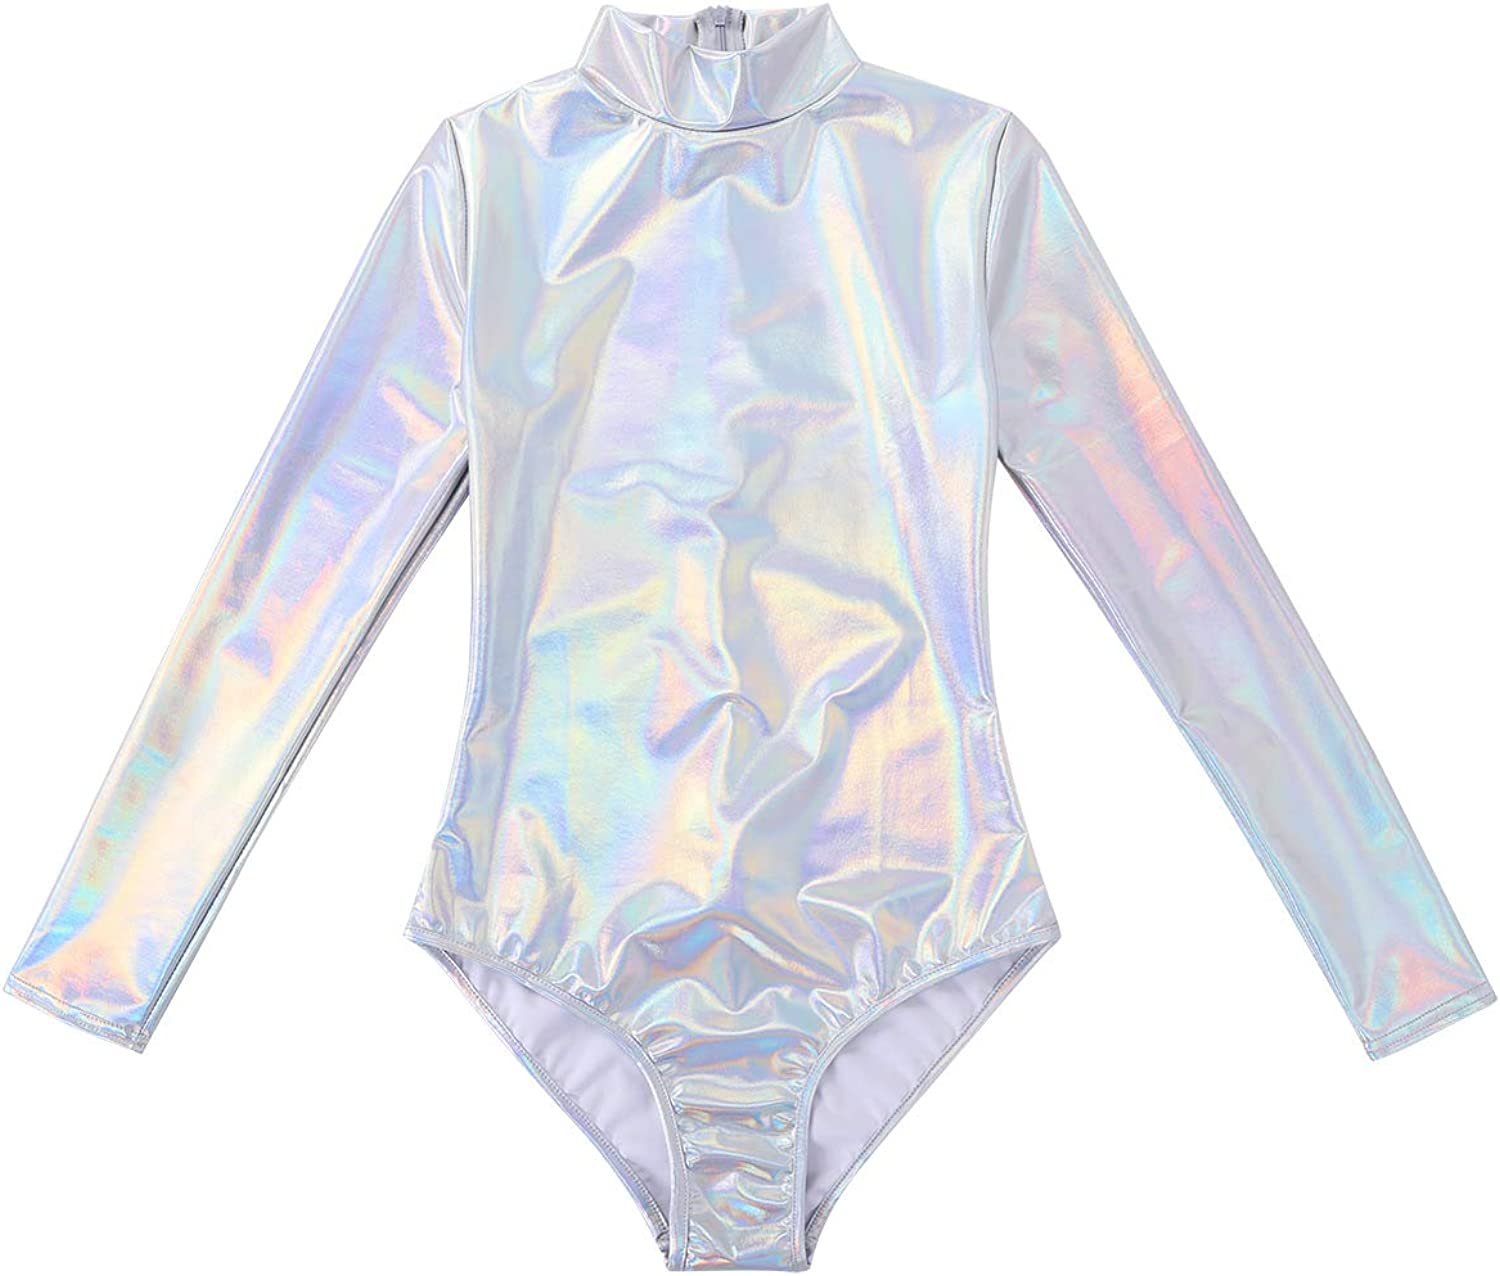 Femmes Pvc Pu Wet Look manches longues Stretch Body Justaucorps Plus Taille 8-22